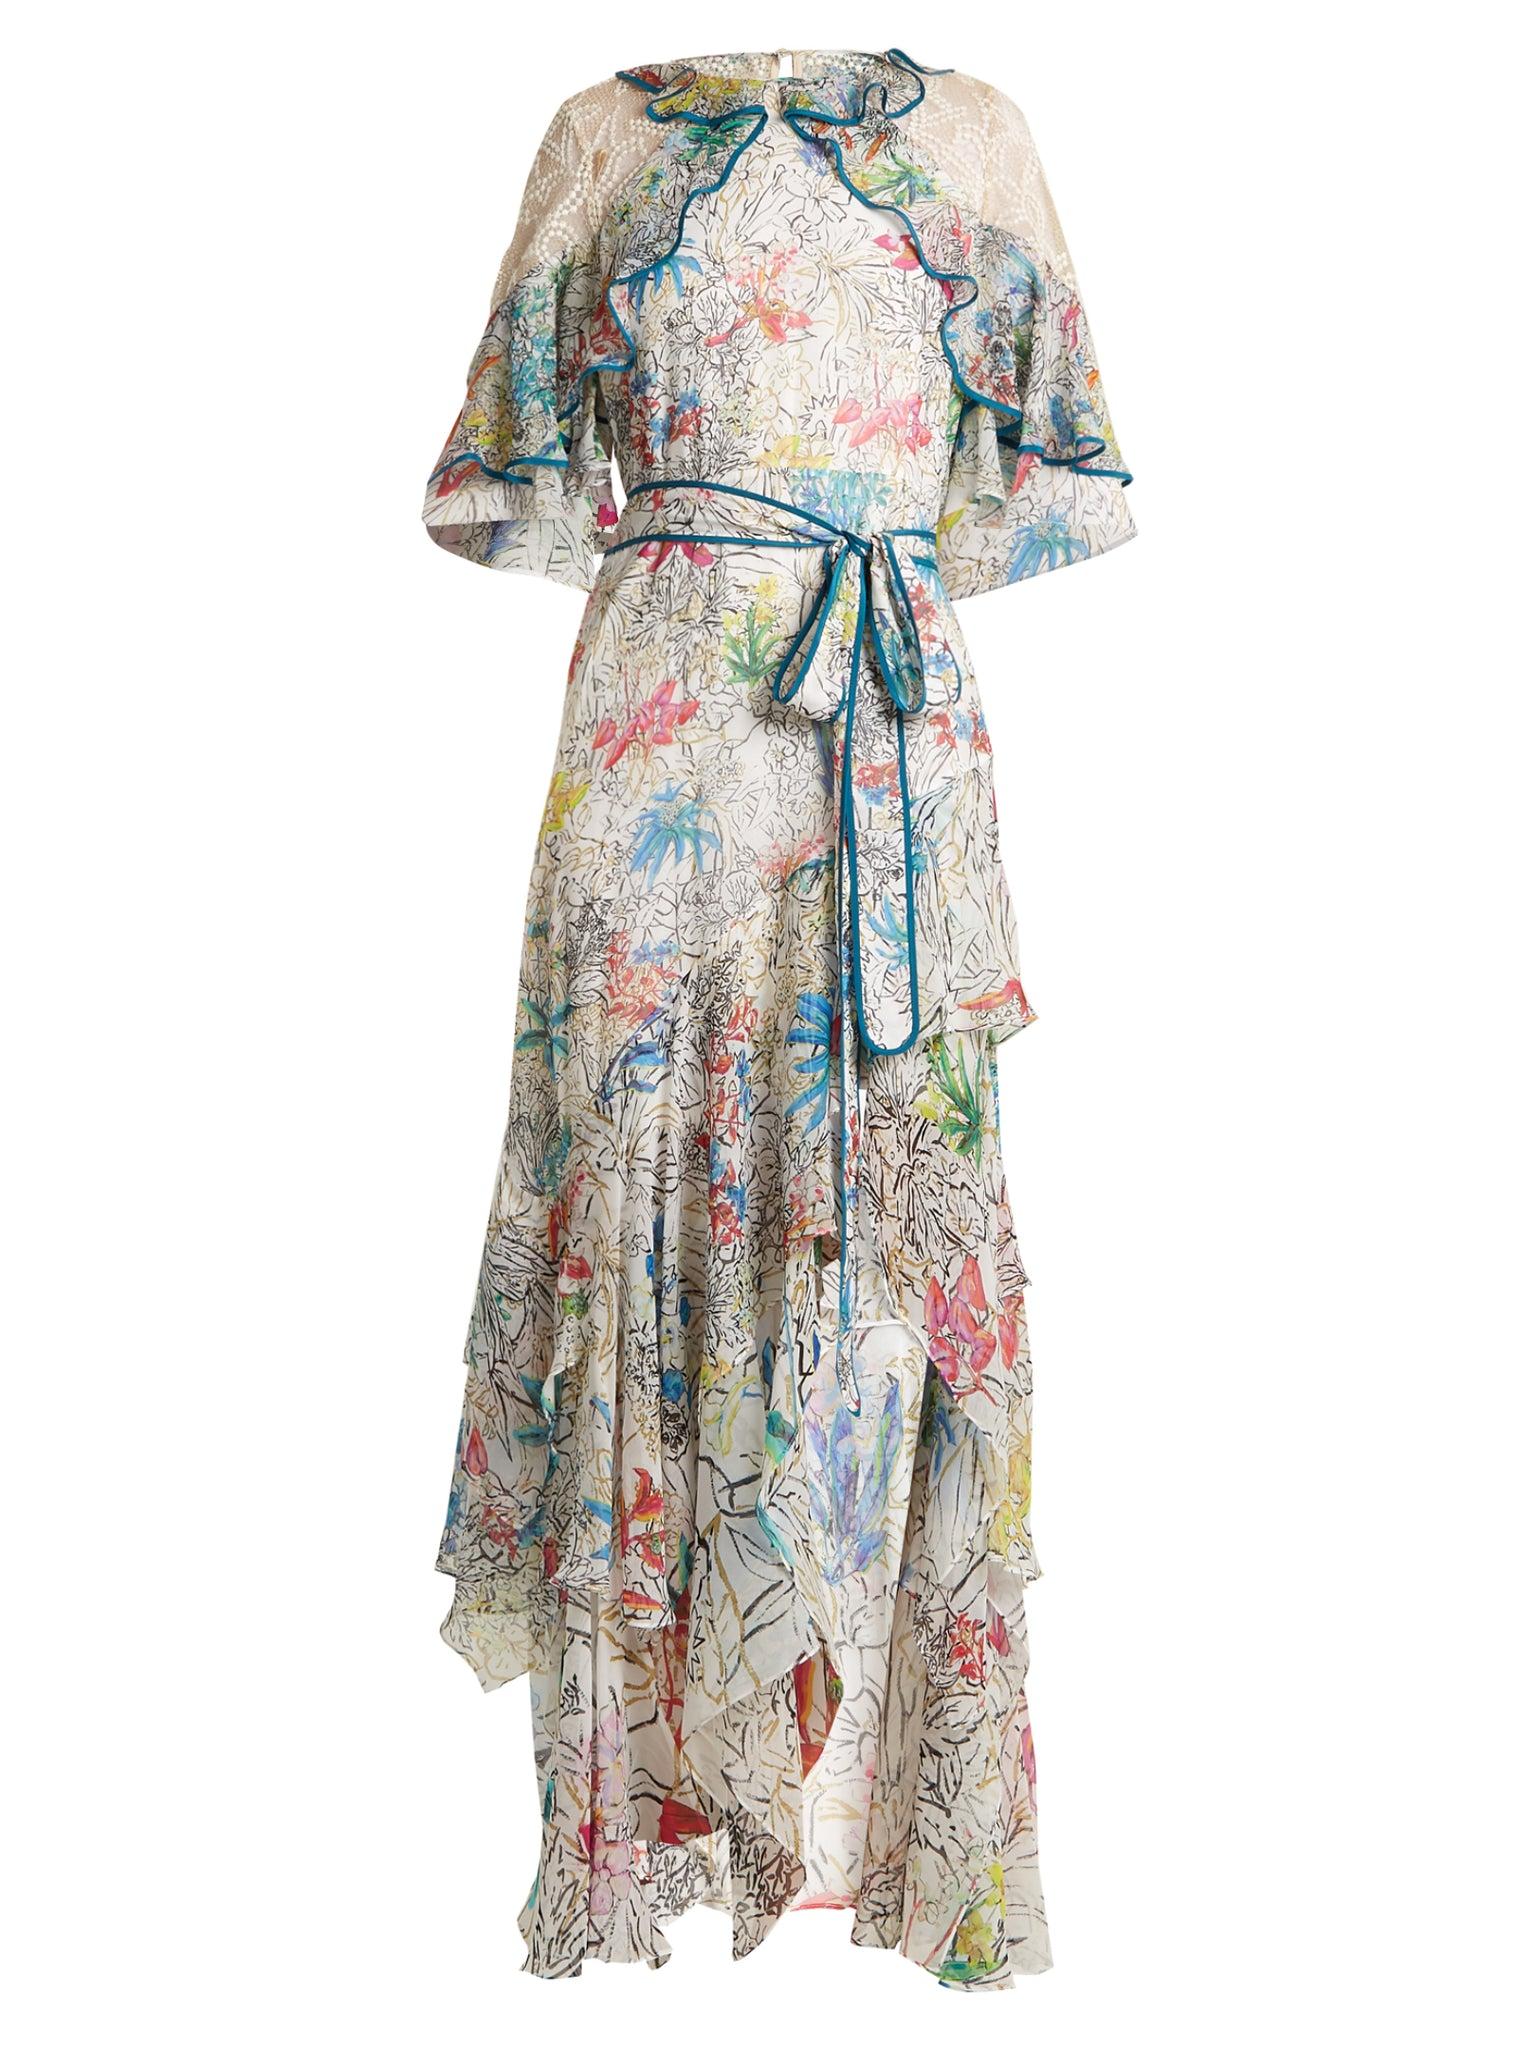 kATRINA kIAF Floral-print ruffled silk-georgette dress